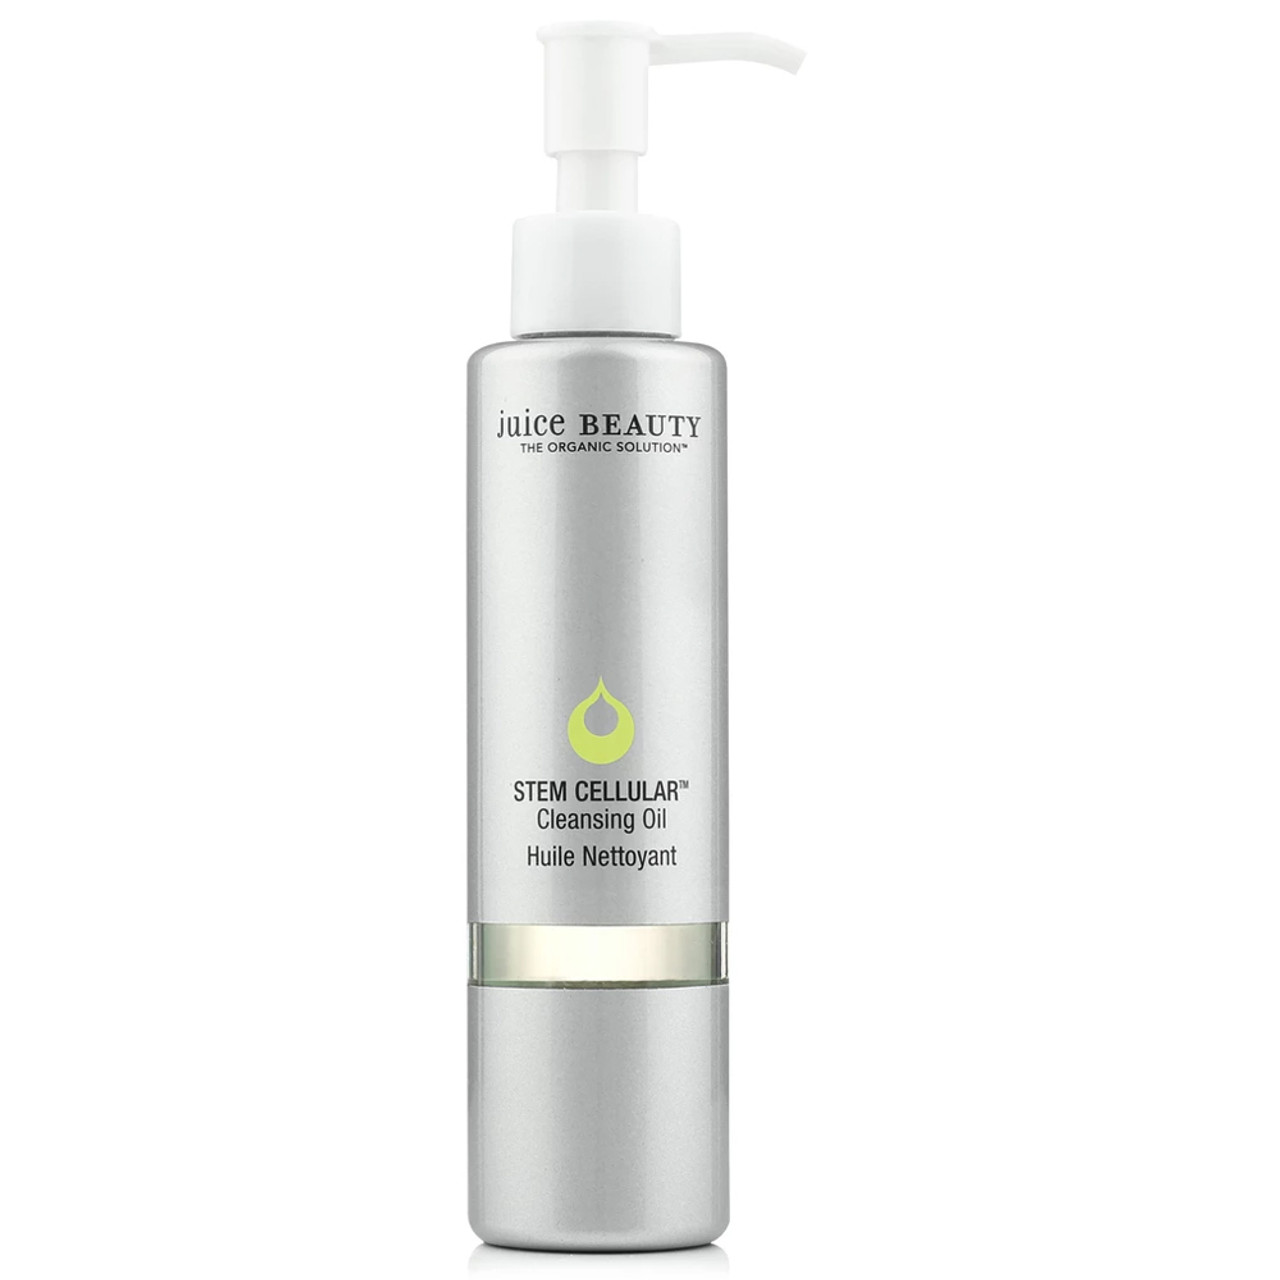 Juice Beauty Cellular Cleansing Oil